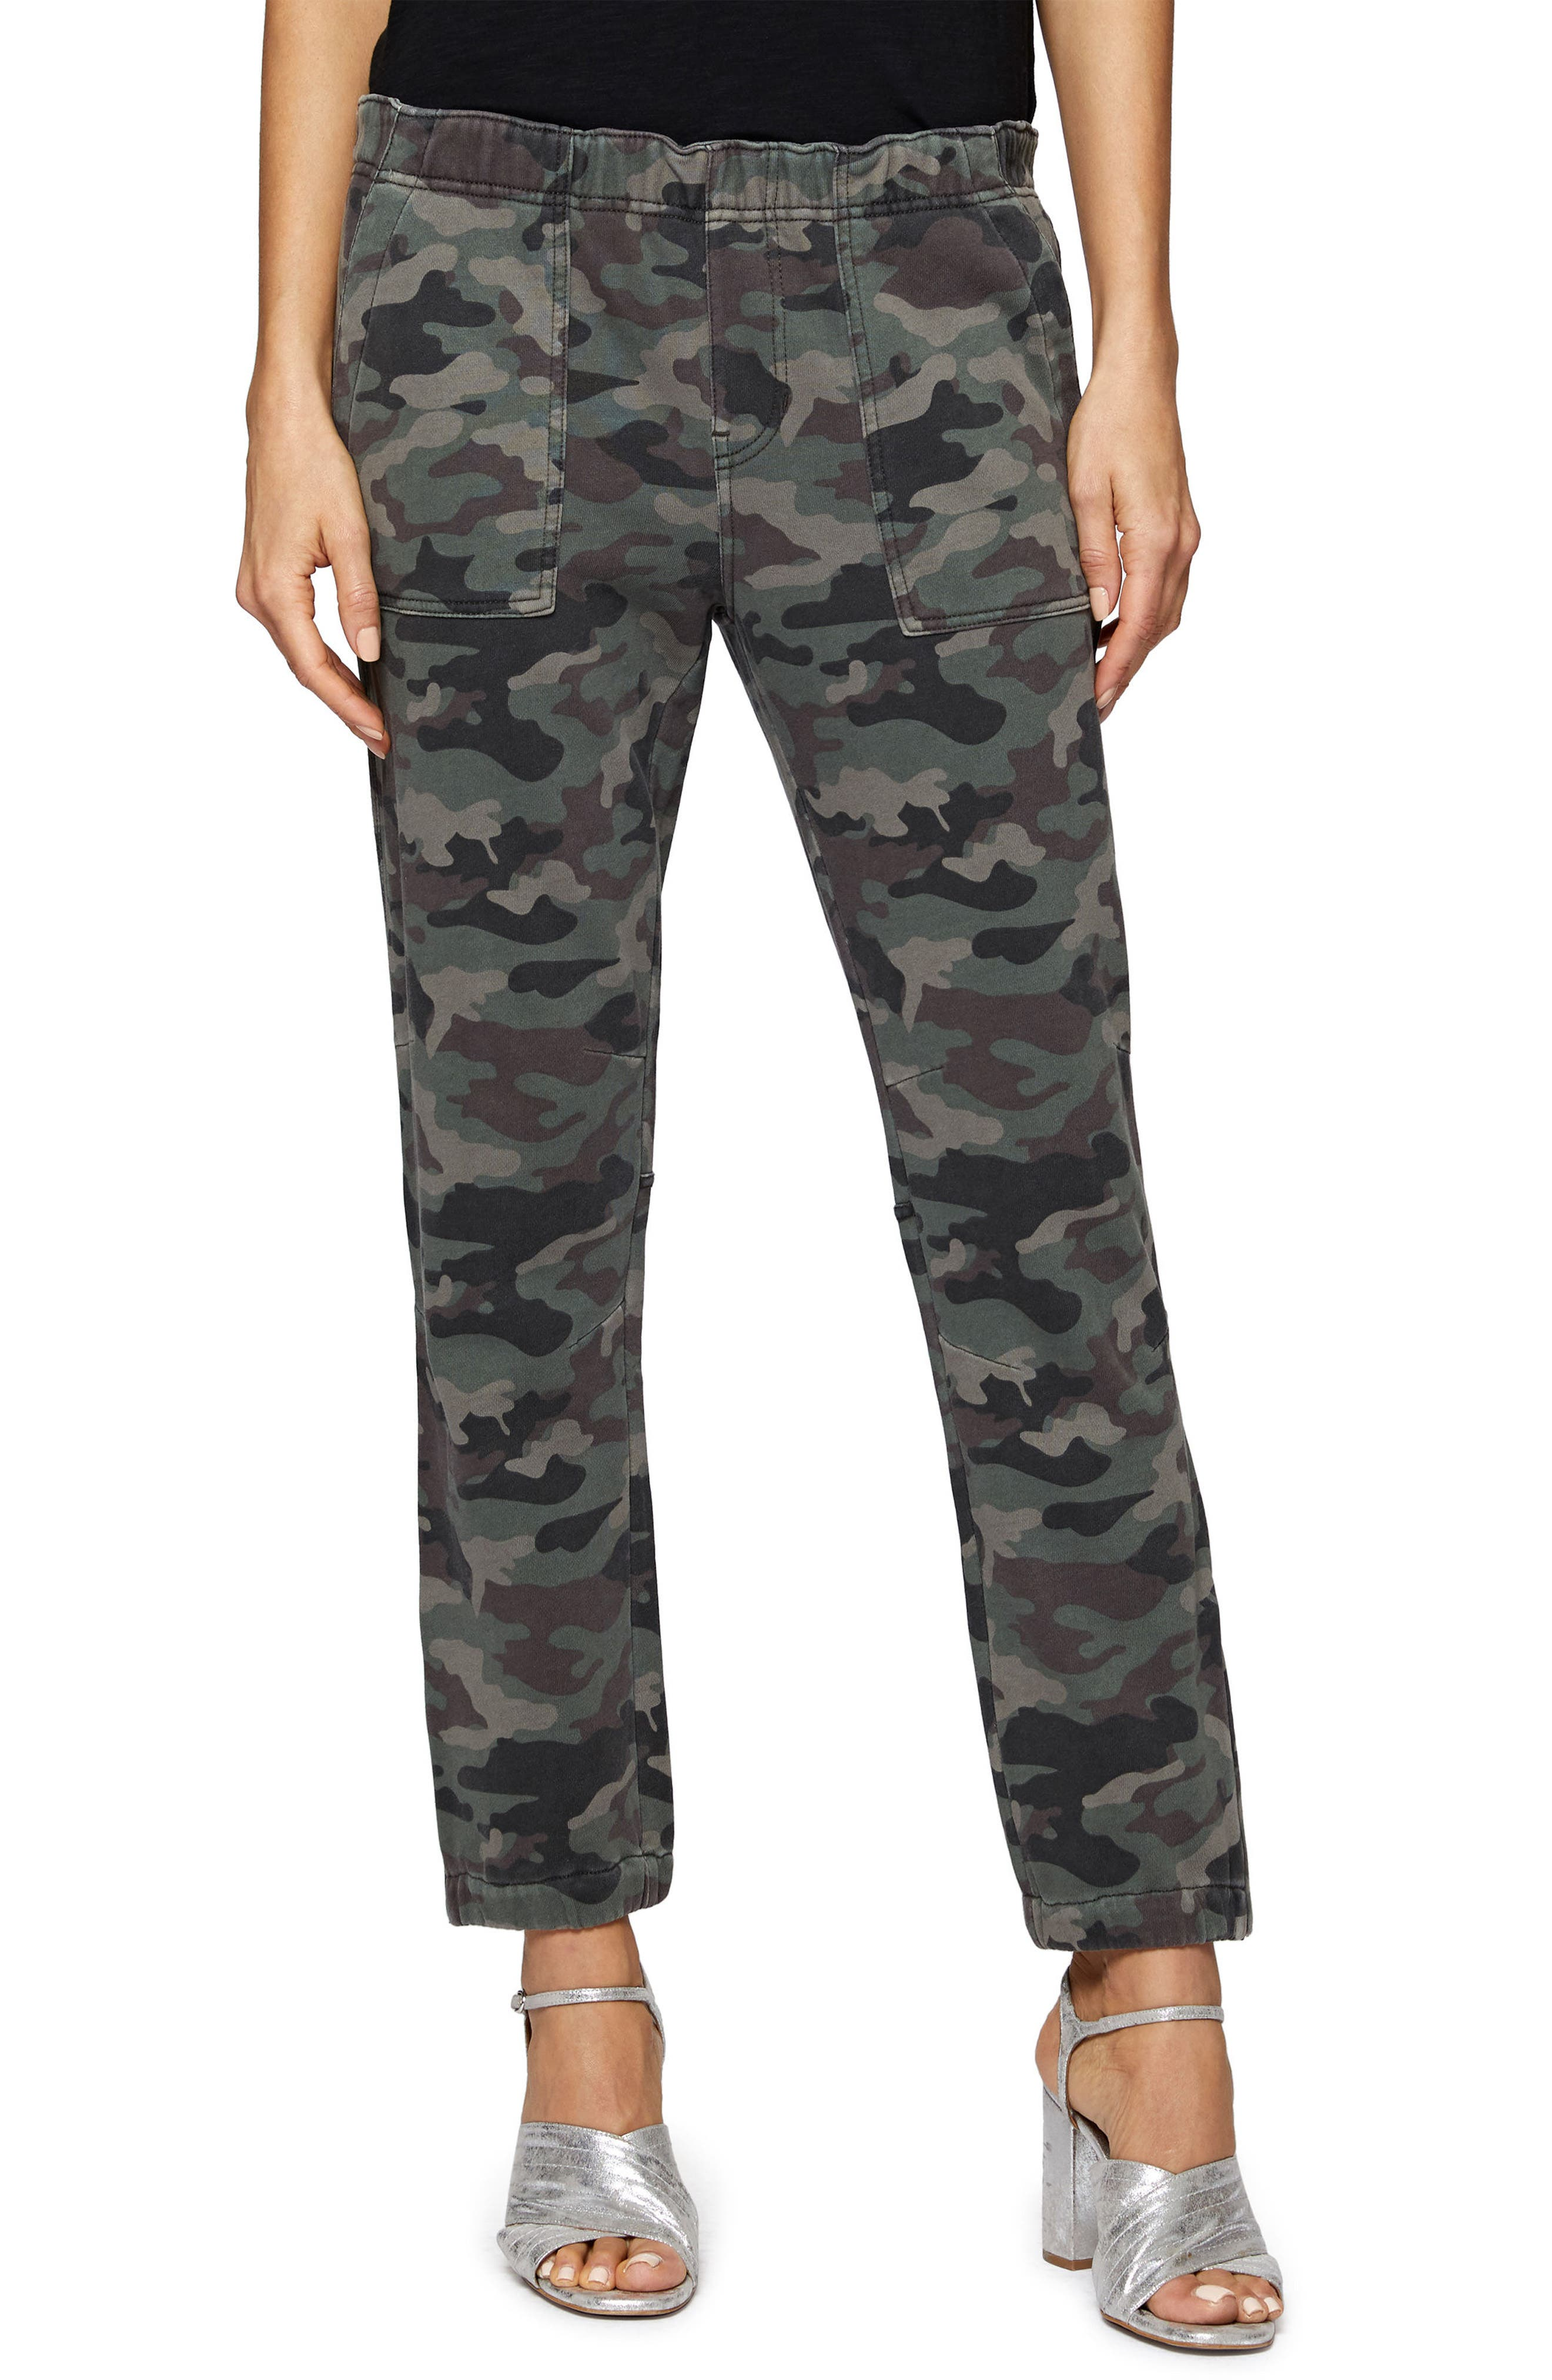 Troop Camo Jogger Pants,                             Main thumbnail 1, color,                             397